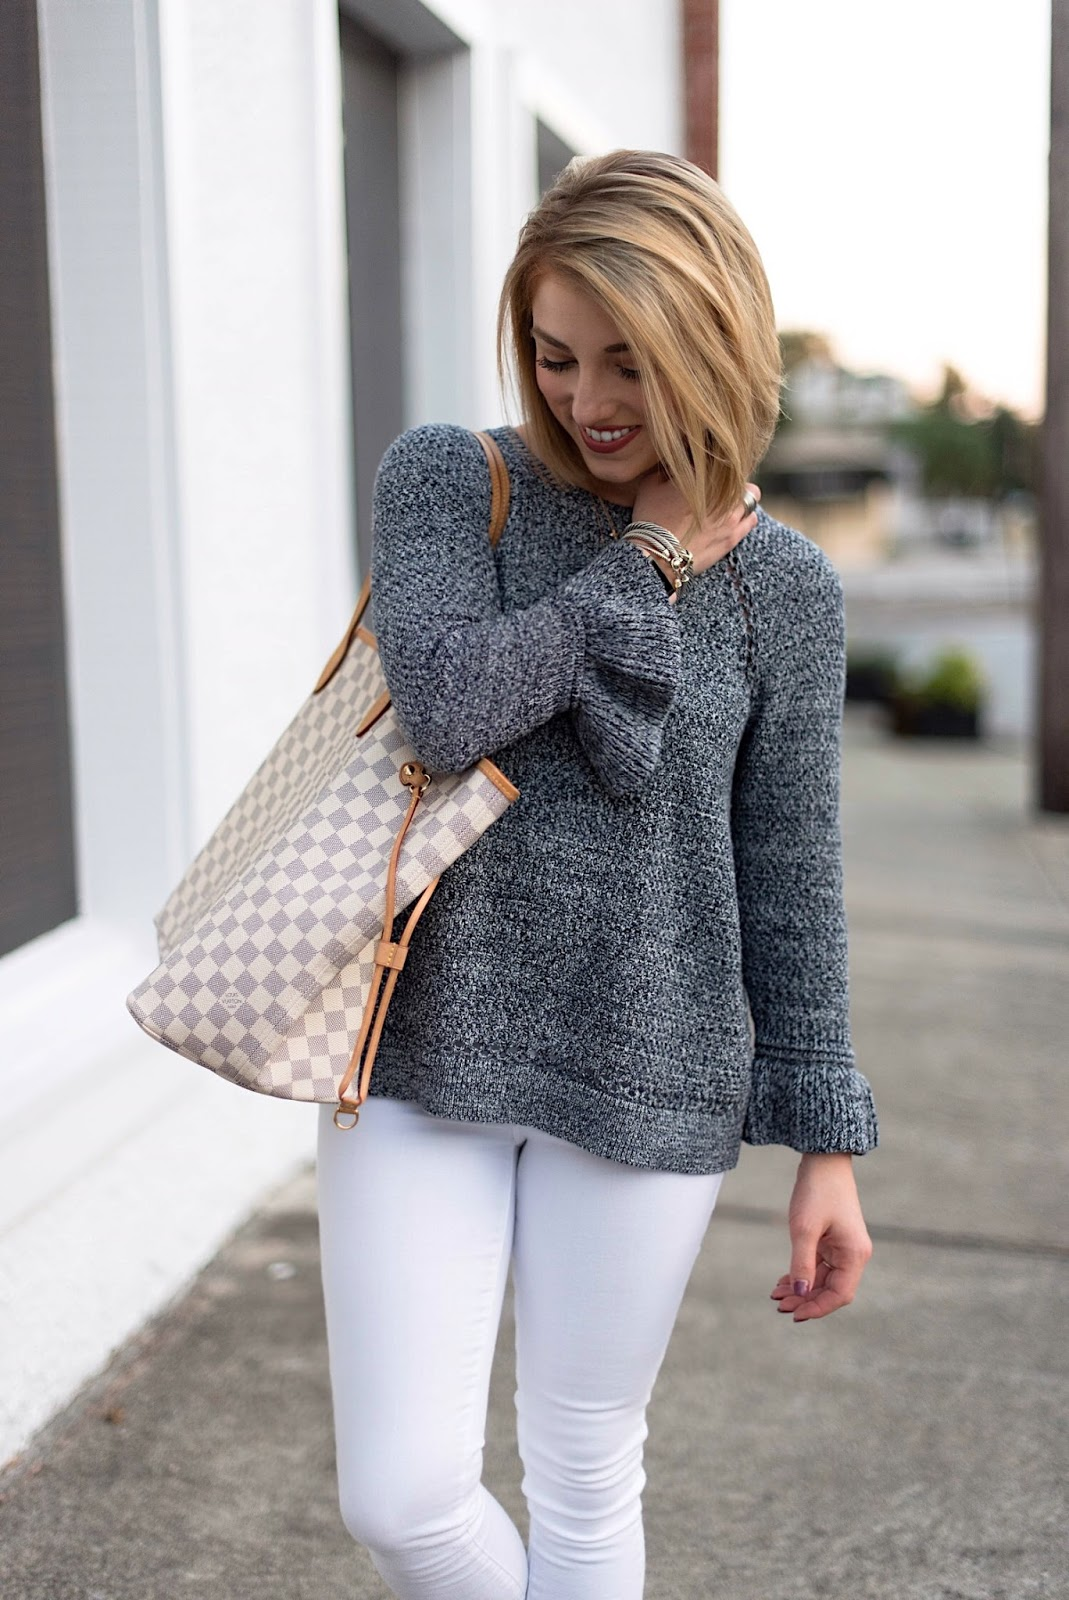 Ruffle Cuff Sweater - Something Delightful Blog